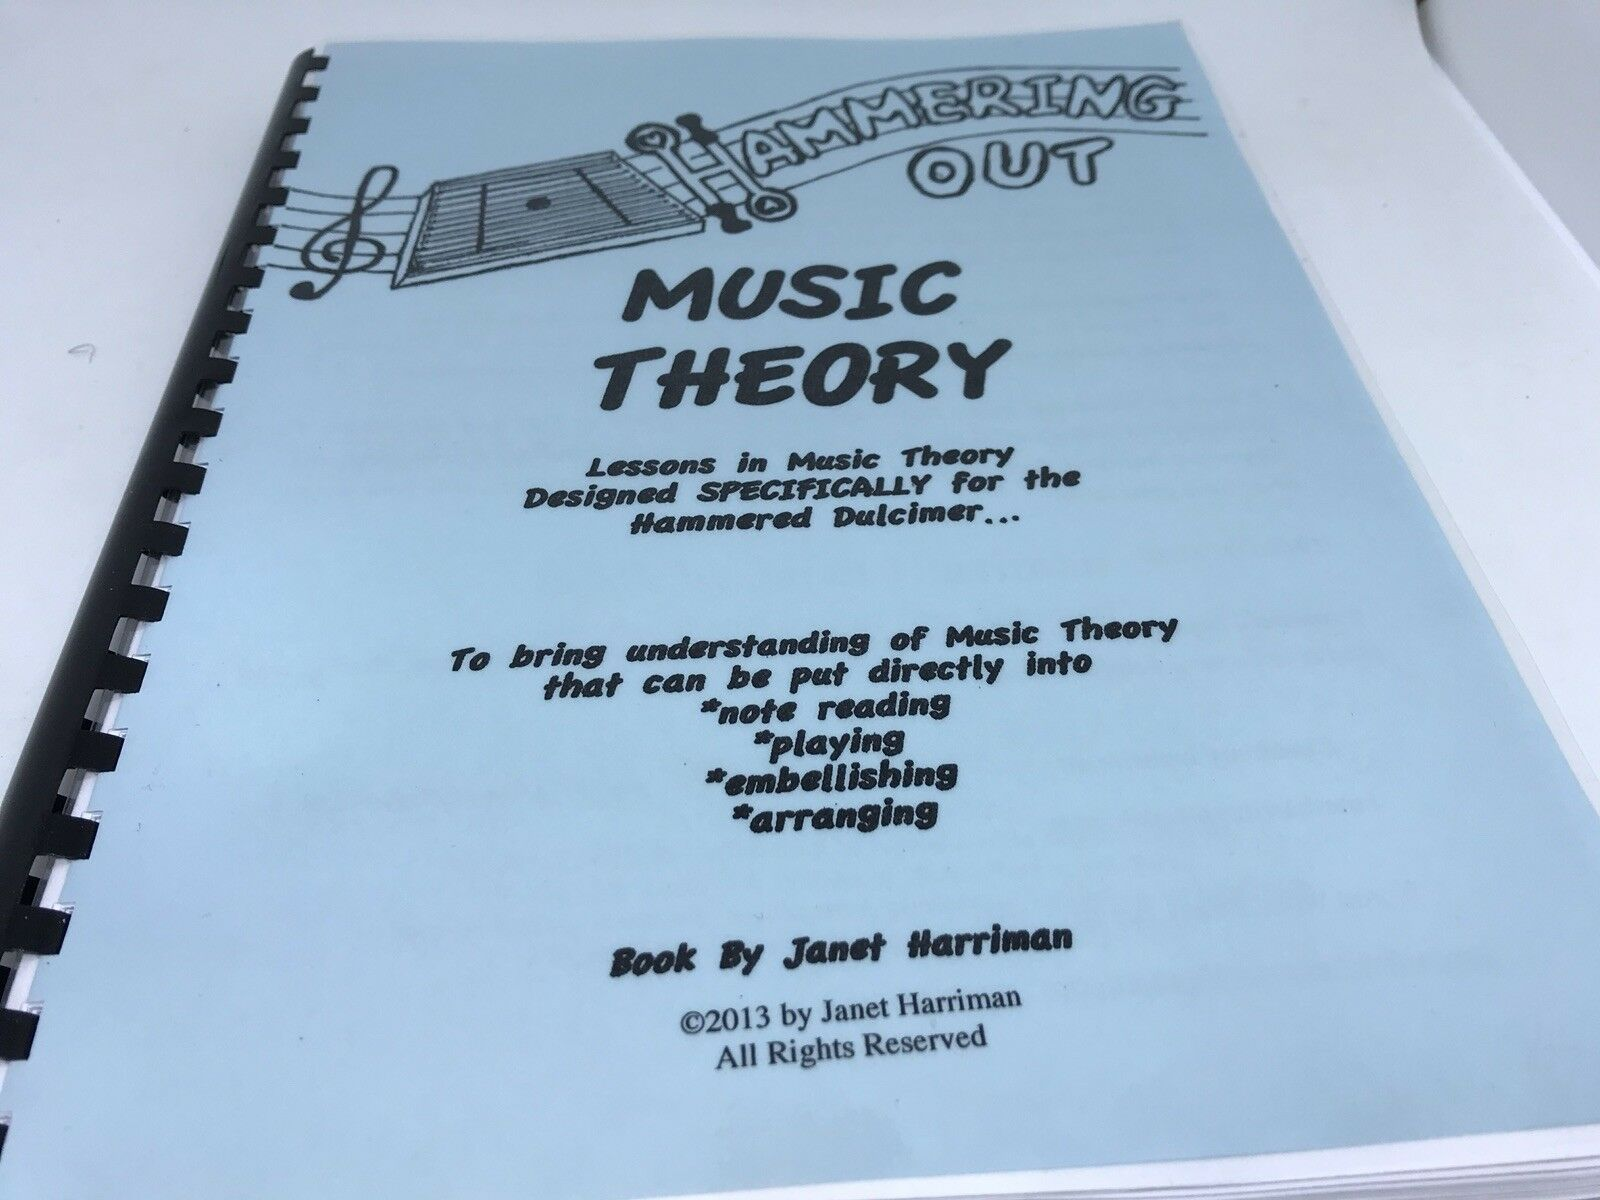 Hammering Out Music Theory - Lessons for the Hammerot Dulcimer by Janet Harriman